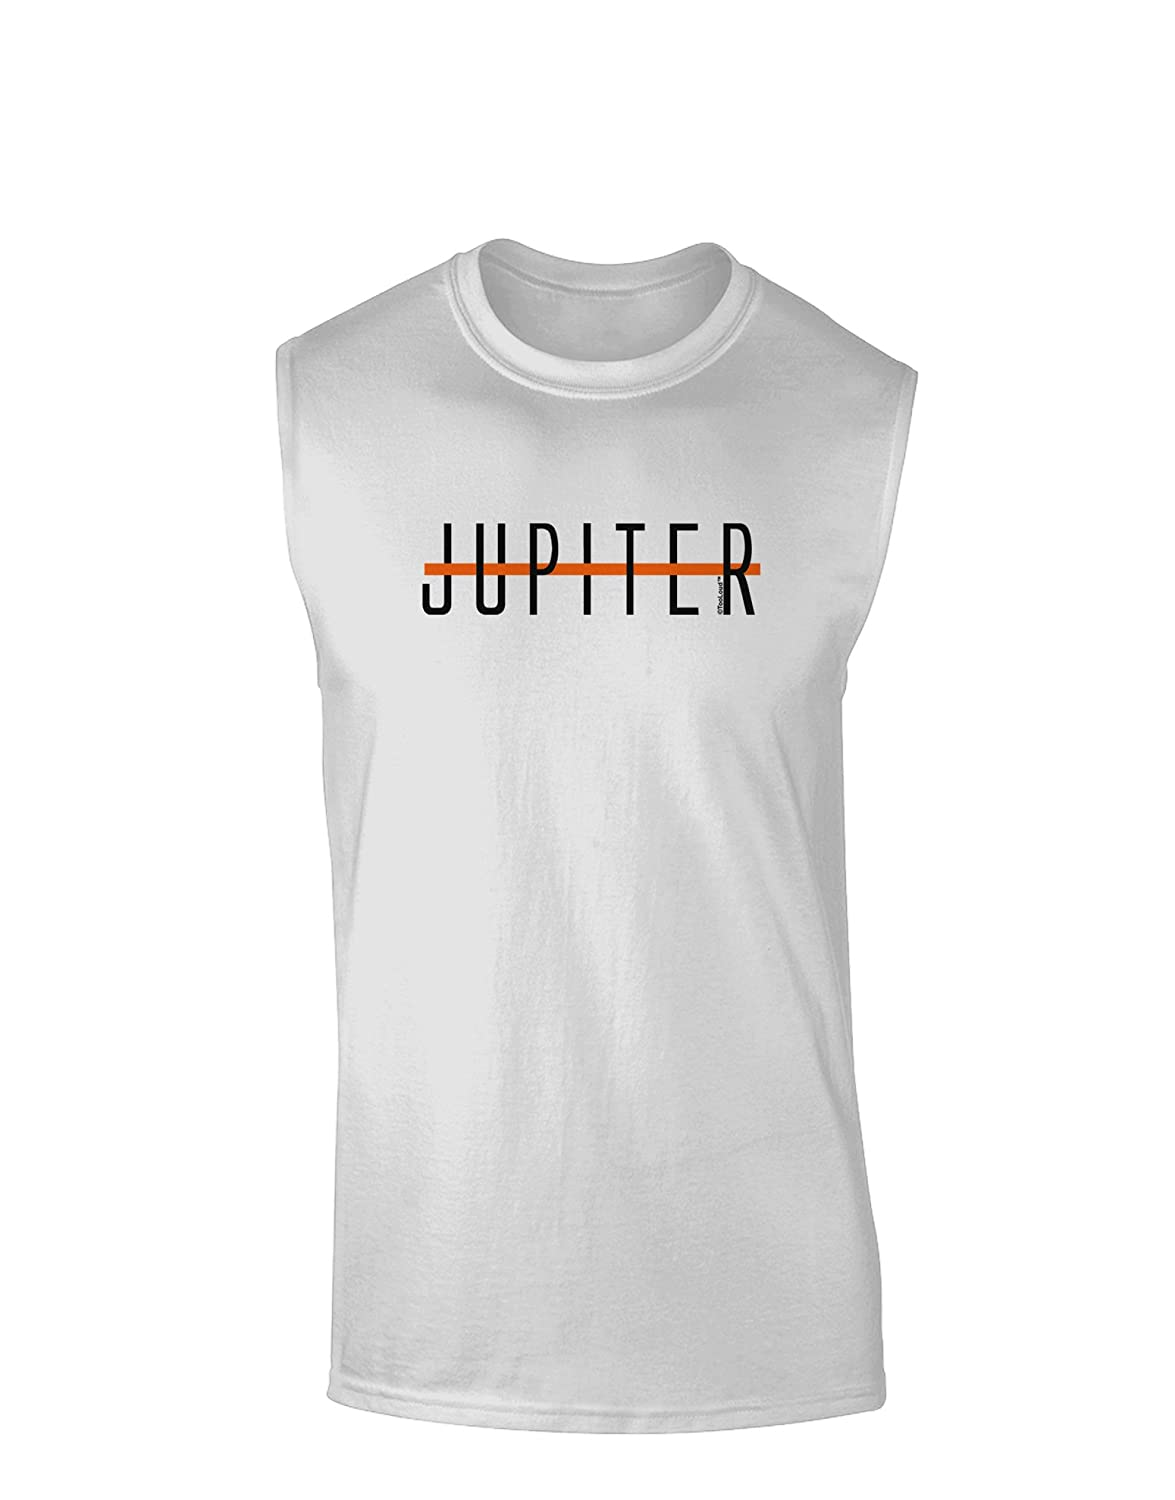 TooLoud Planet Jupiter Text Only Muscle Shirt